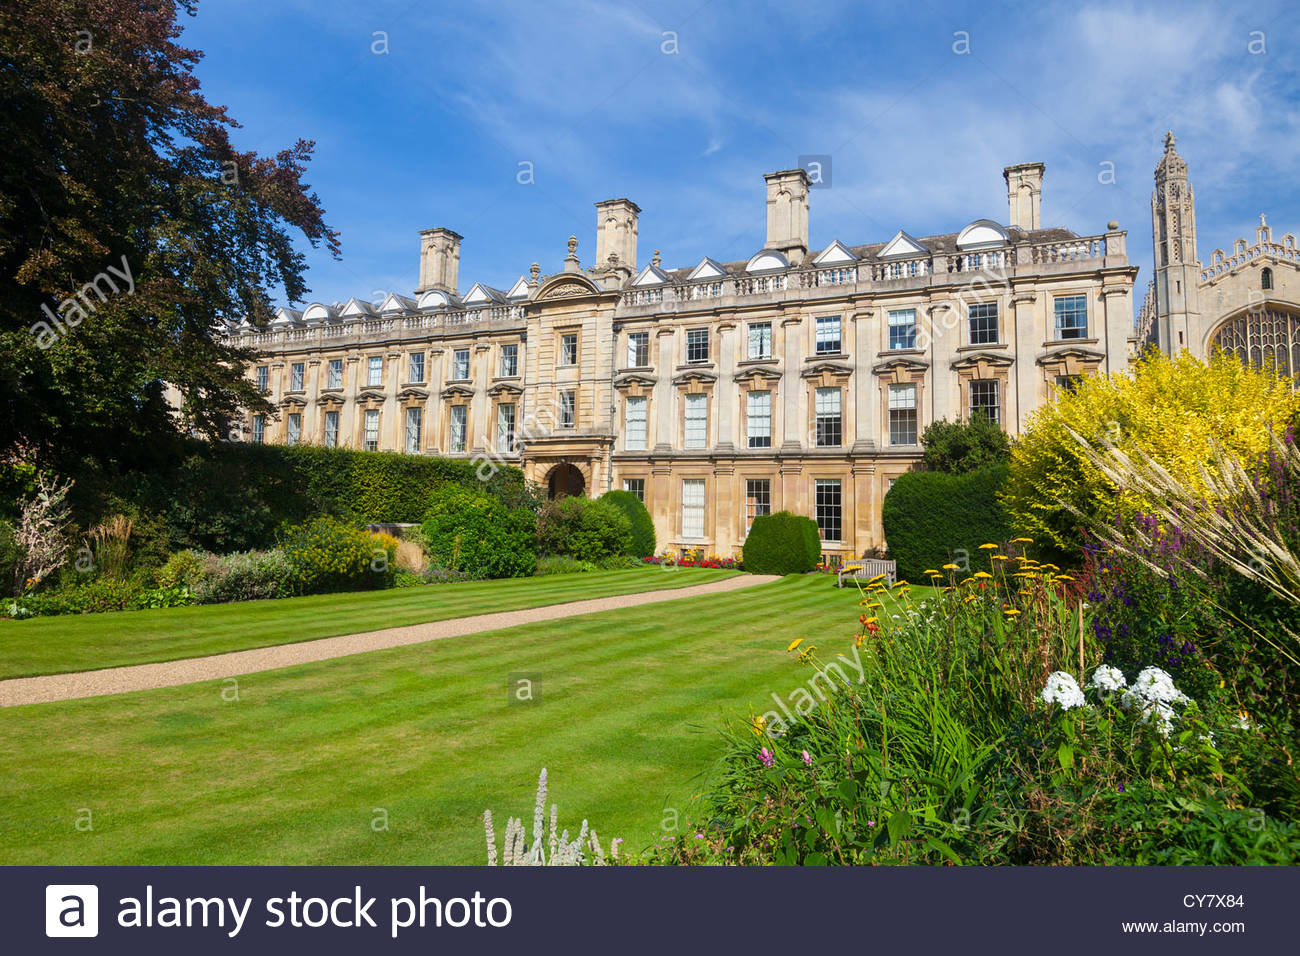 Clare College gardens and lawns, Cambridge, UK - Stock Image